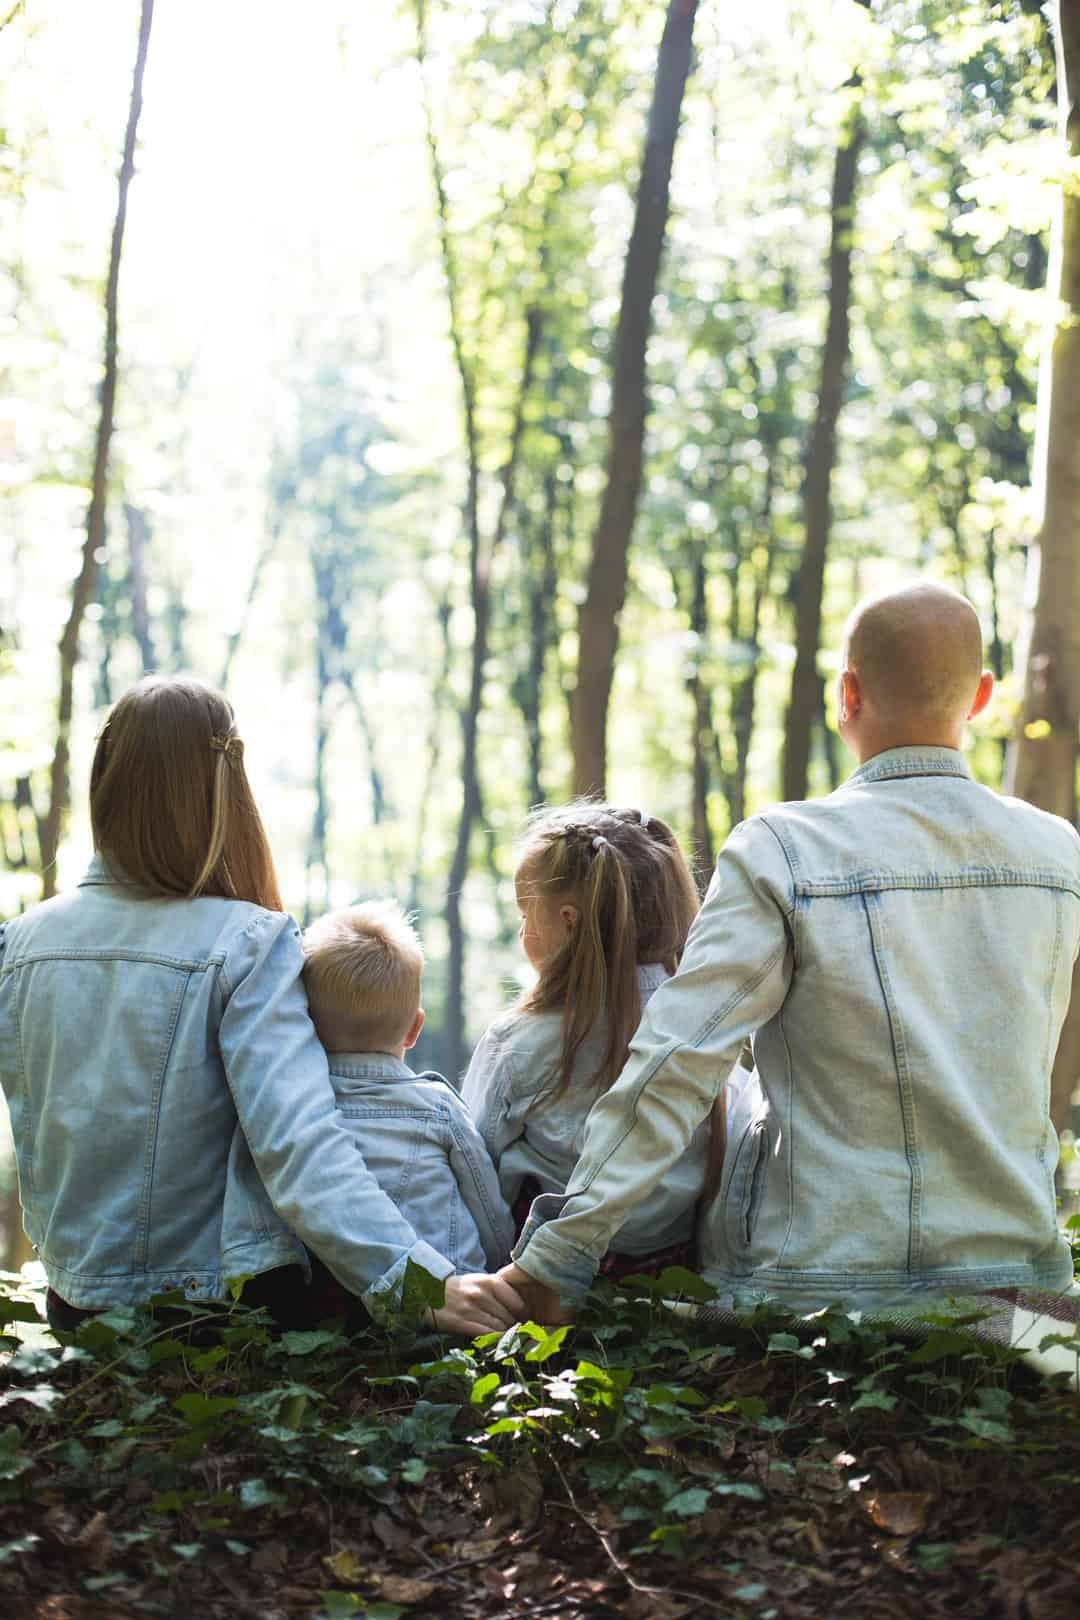 5 Fun Weekend Family Activities You Haven't Considered Yet